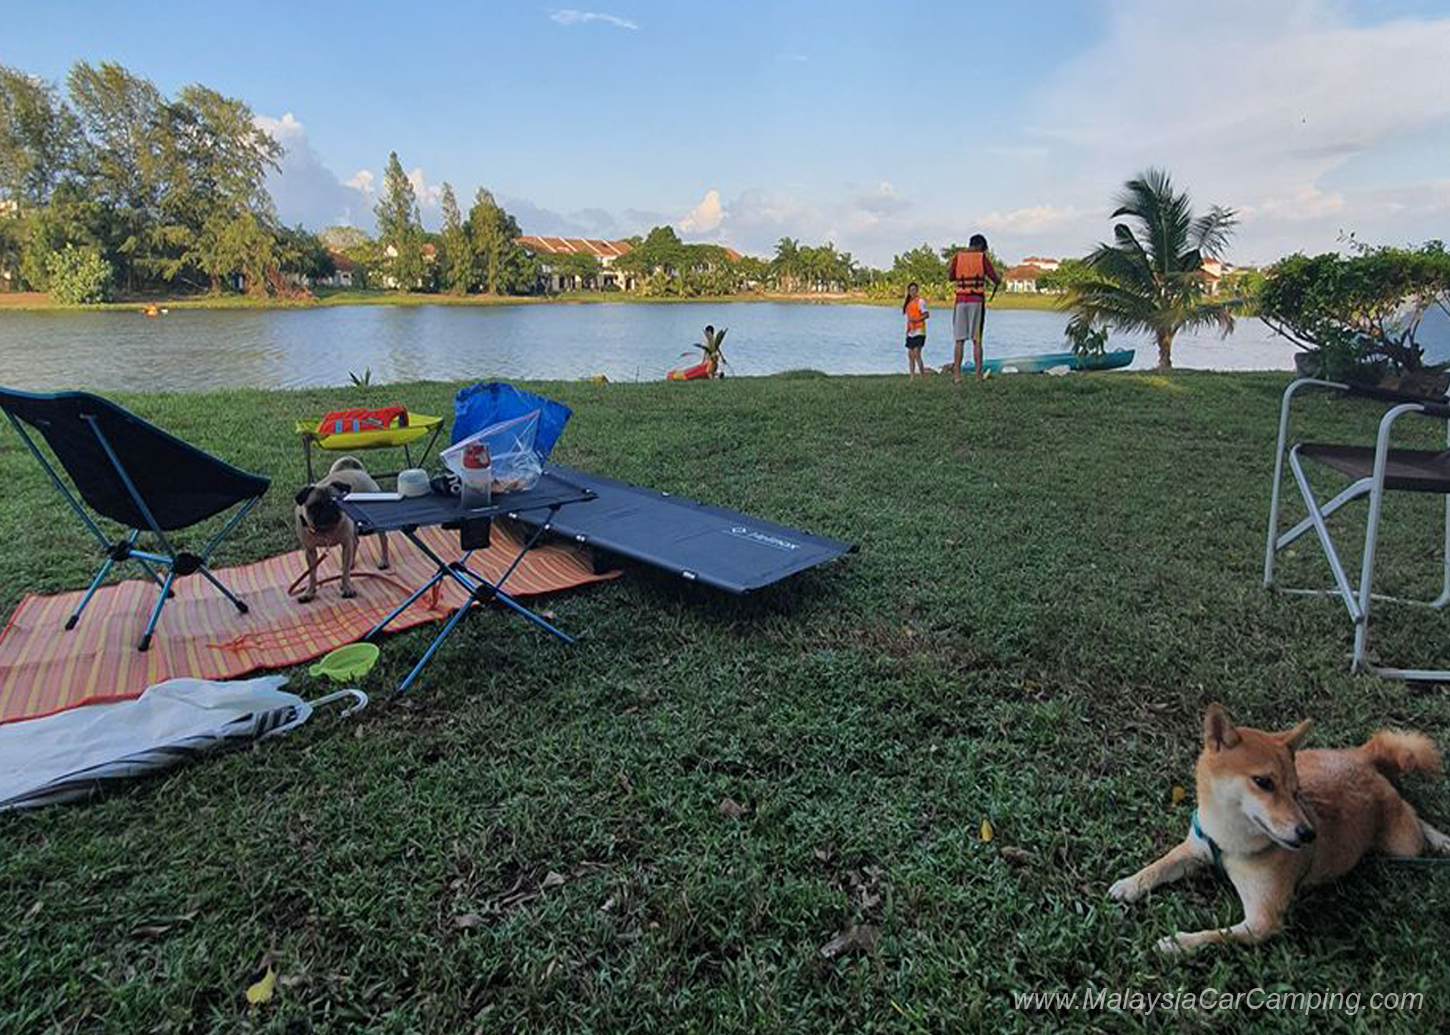 camping_with_dogs_puppy_lakeside_camping_malaysia_car_camping_malaysia_campsite-23